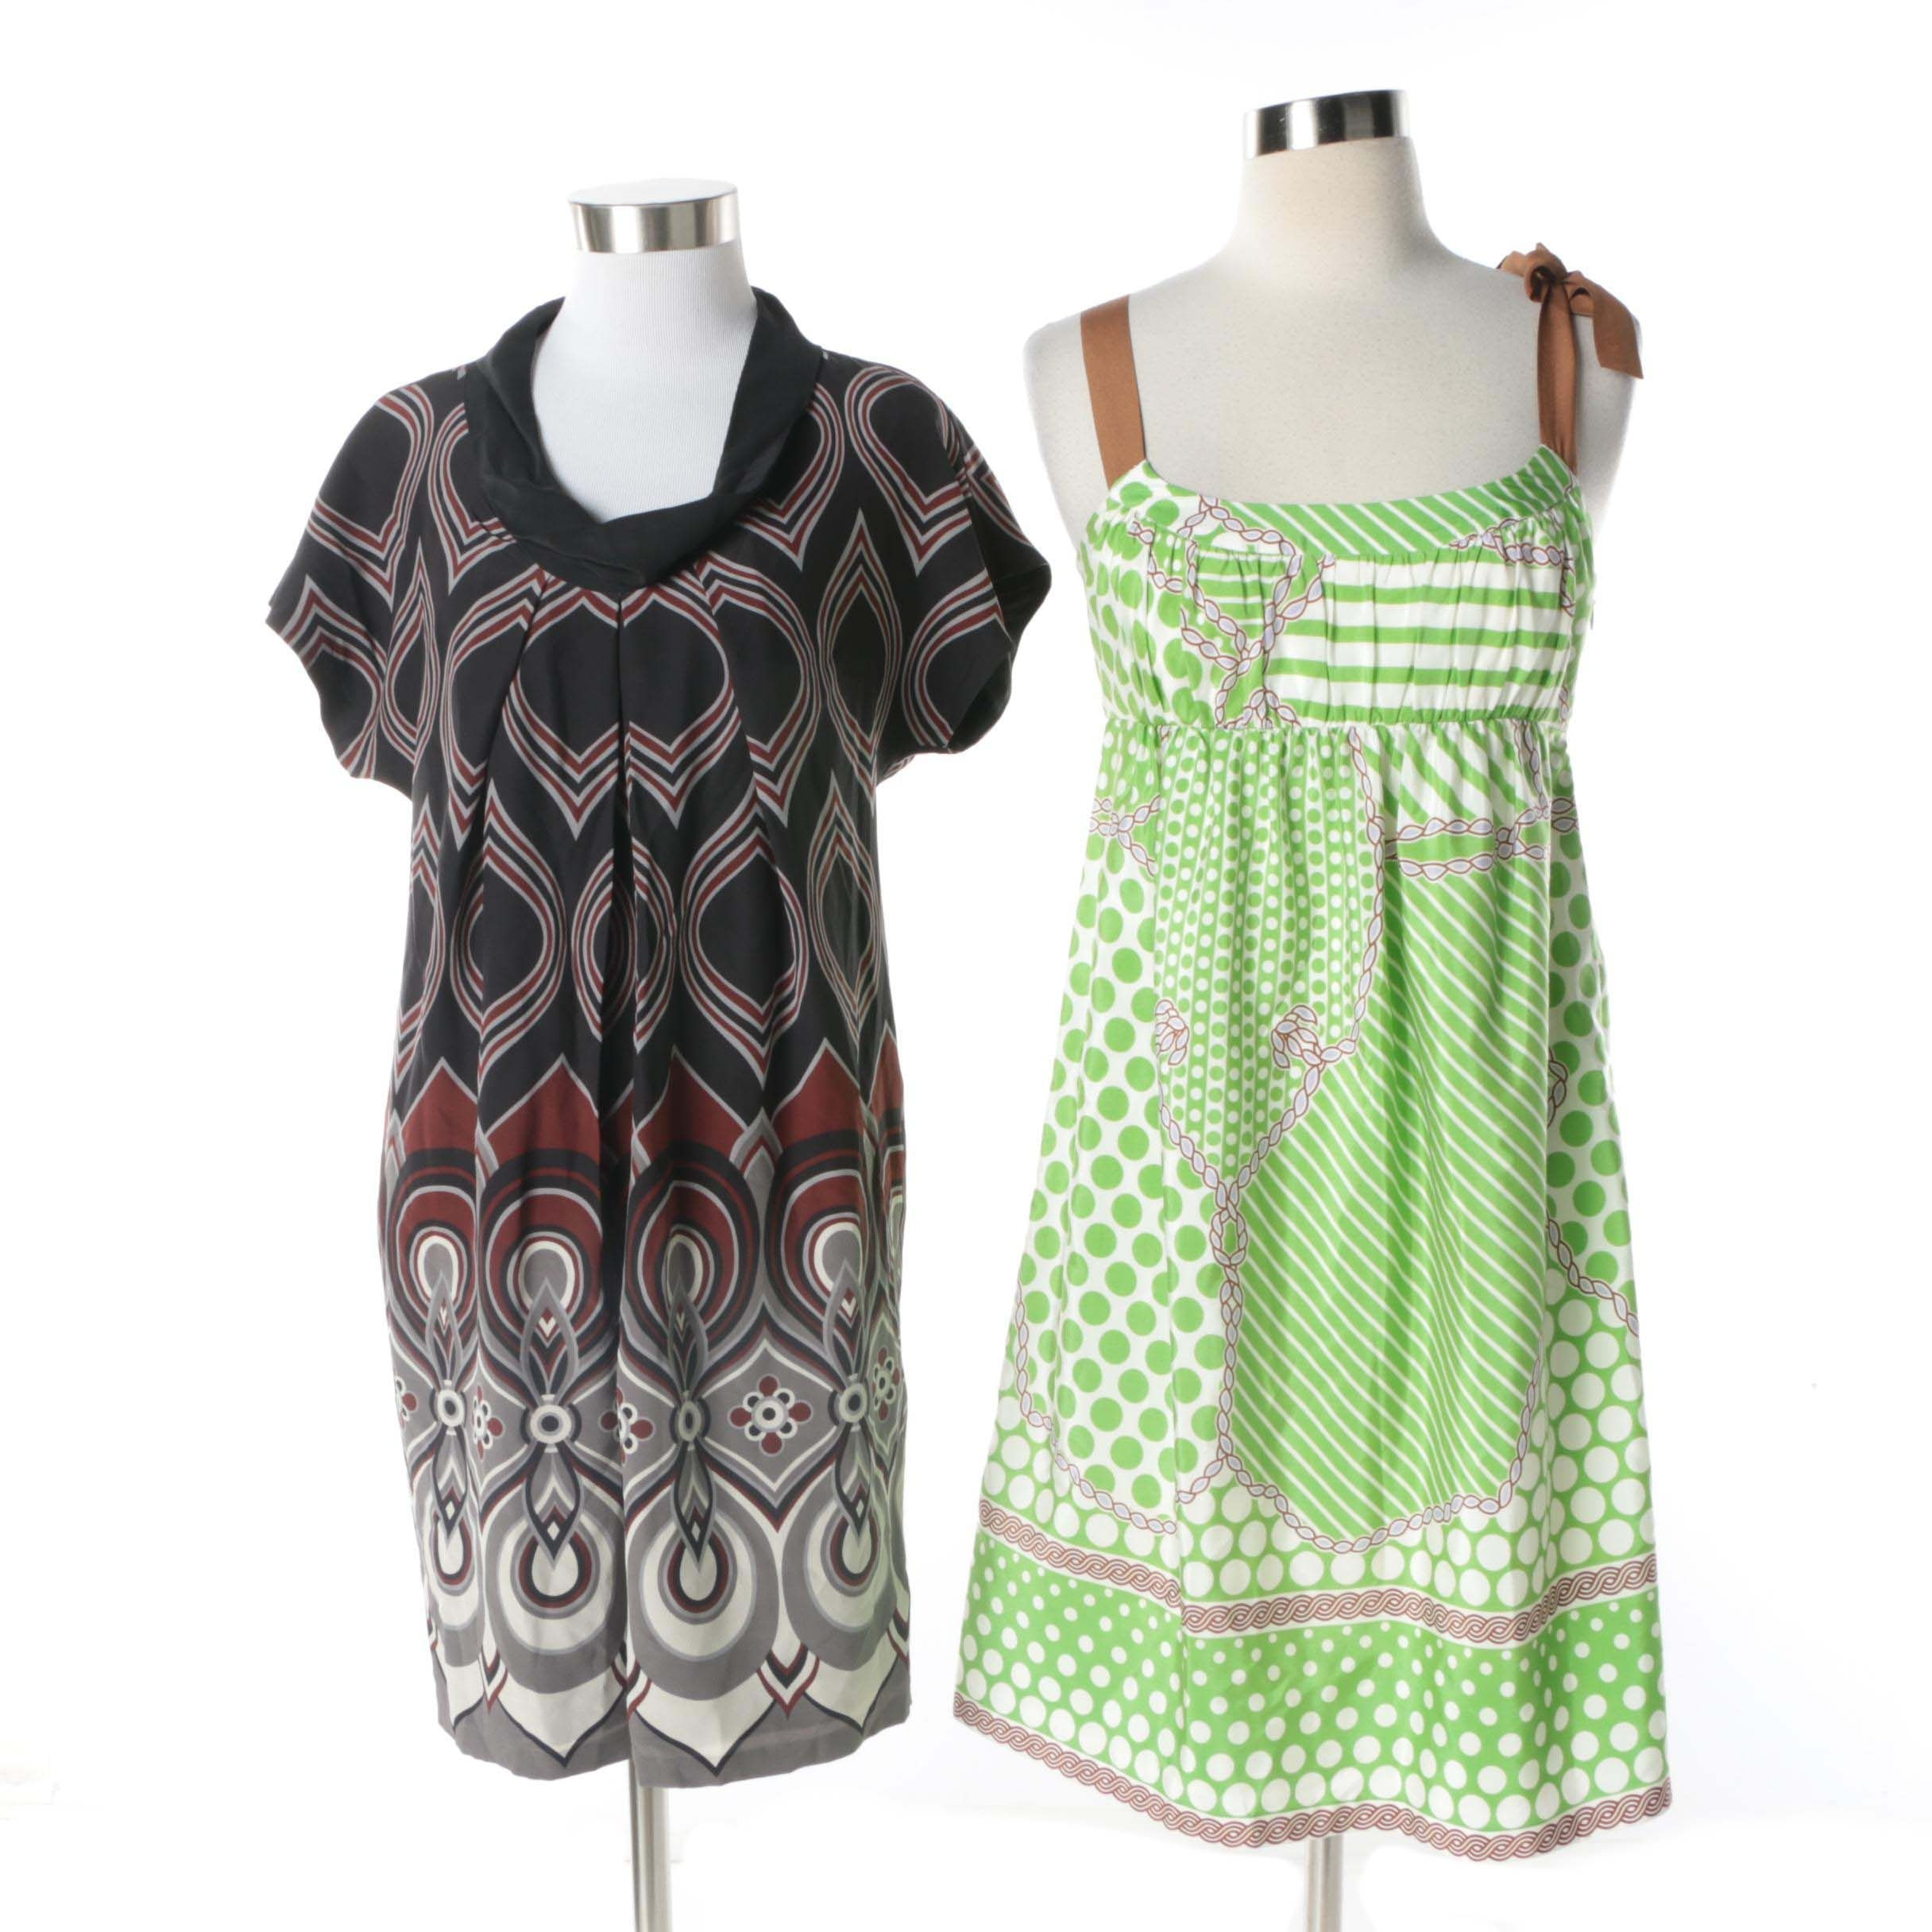 Tibi New York Black and Green Print Silk Blend Dresses